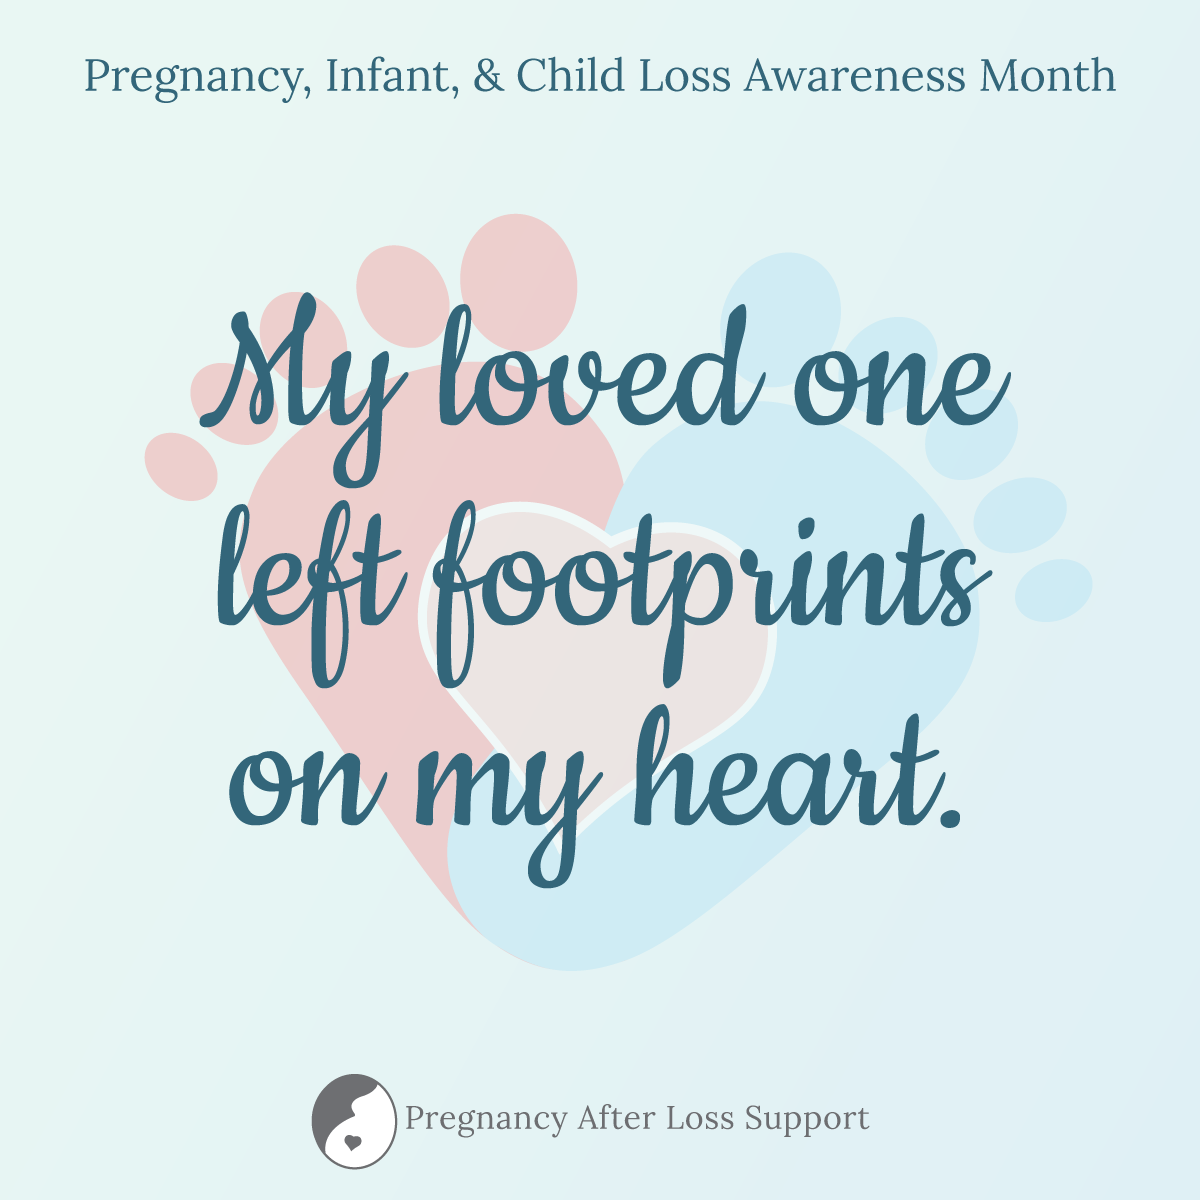 My loved one left footprints on my heart graphic for Pregnancy, Infant, and Child Loss Awareness Month